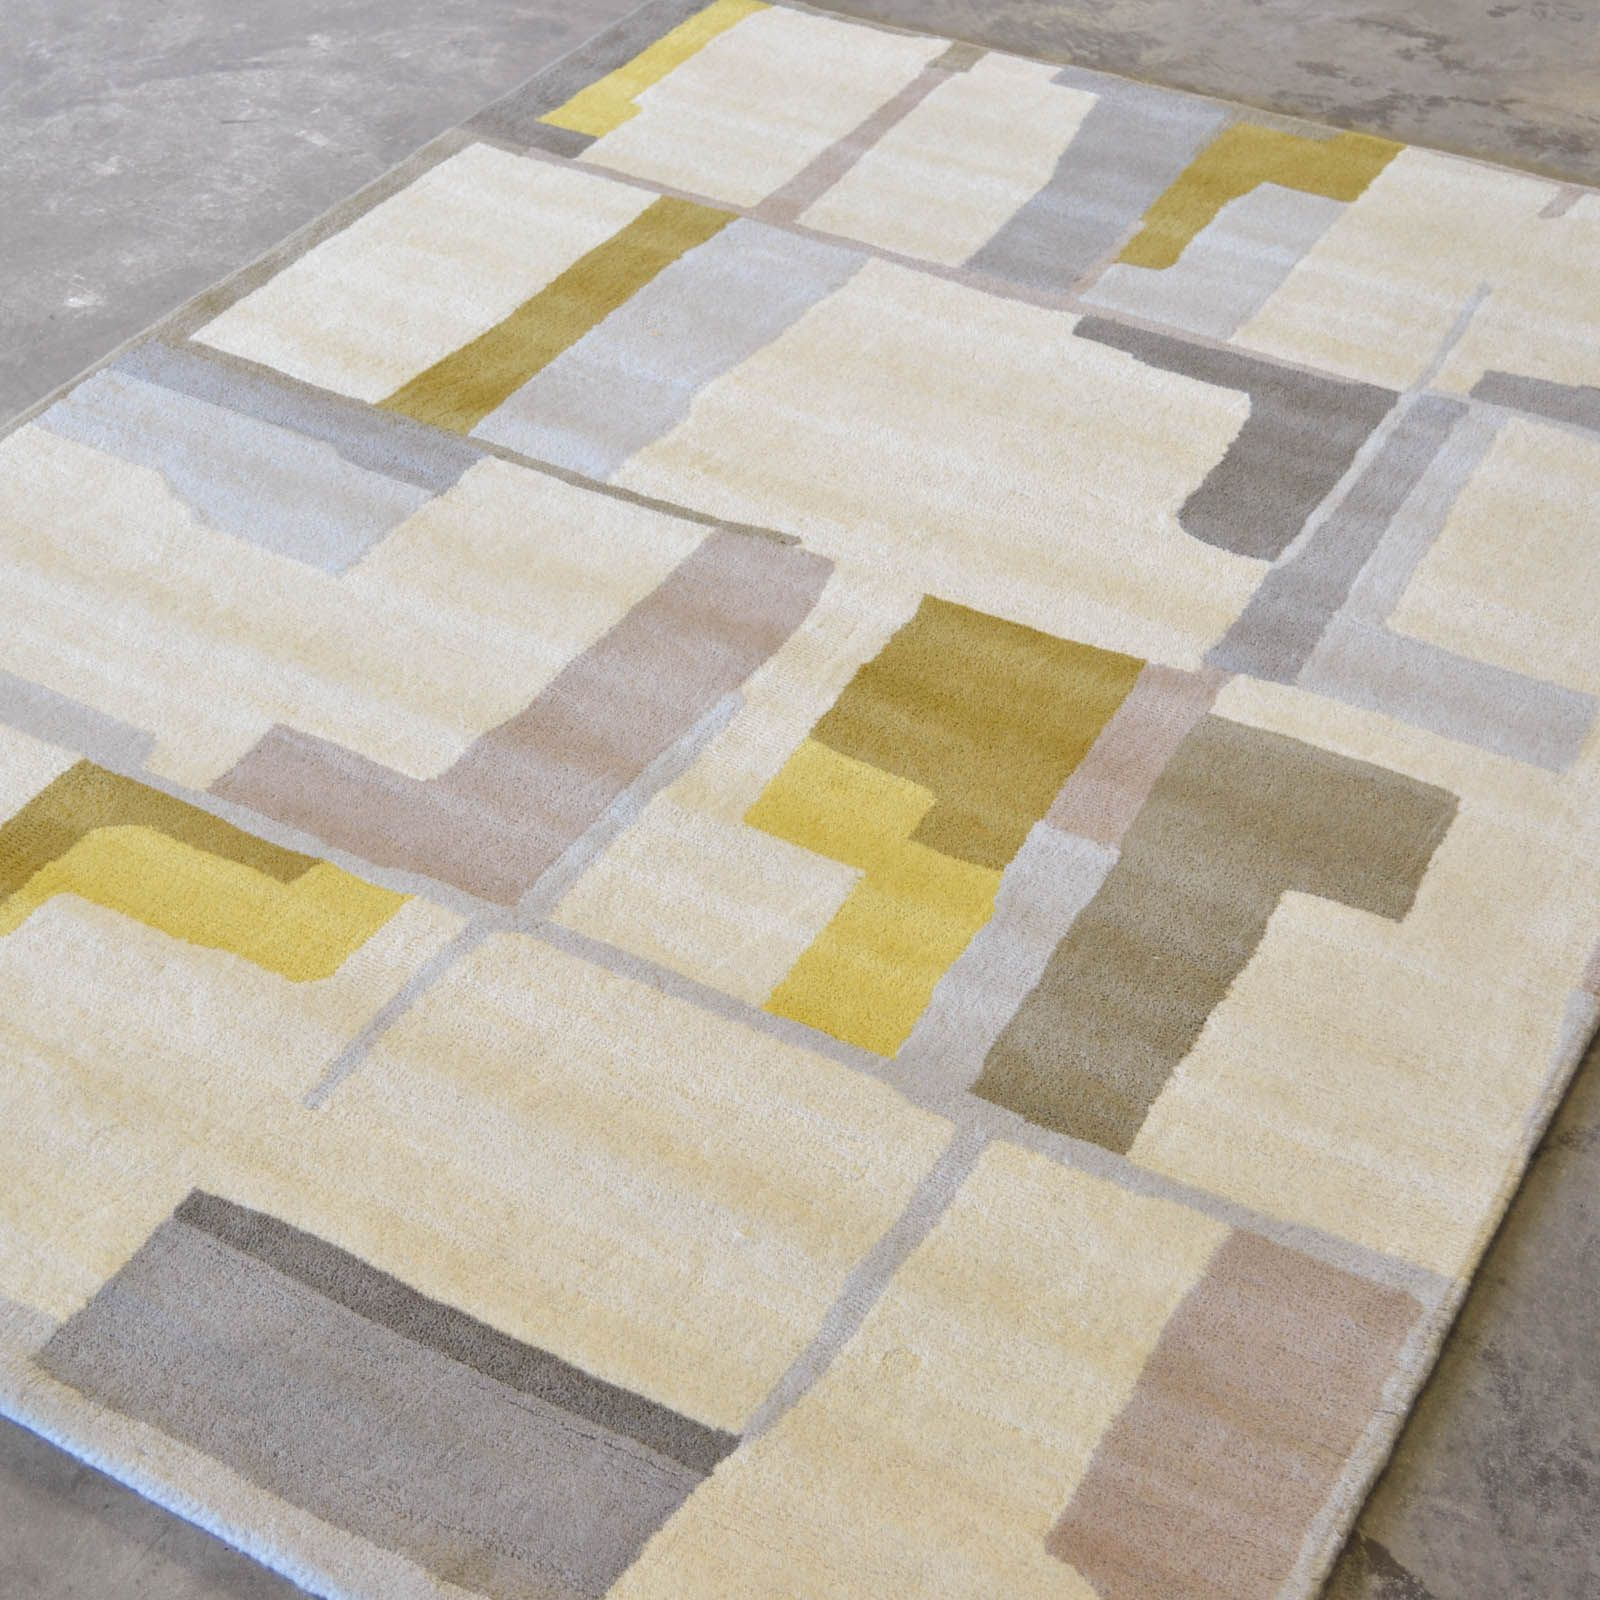 Estella Fragment Rugs By Brink And Campman Are Highly Inspirational With A  Stunning Design And A